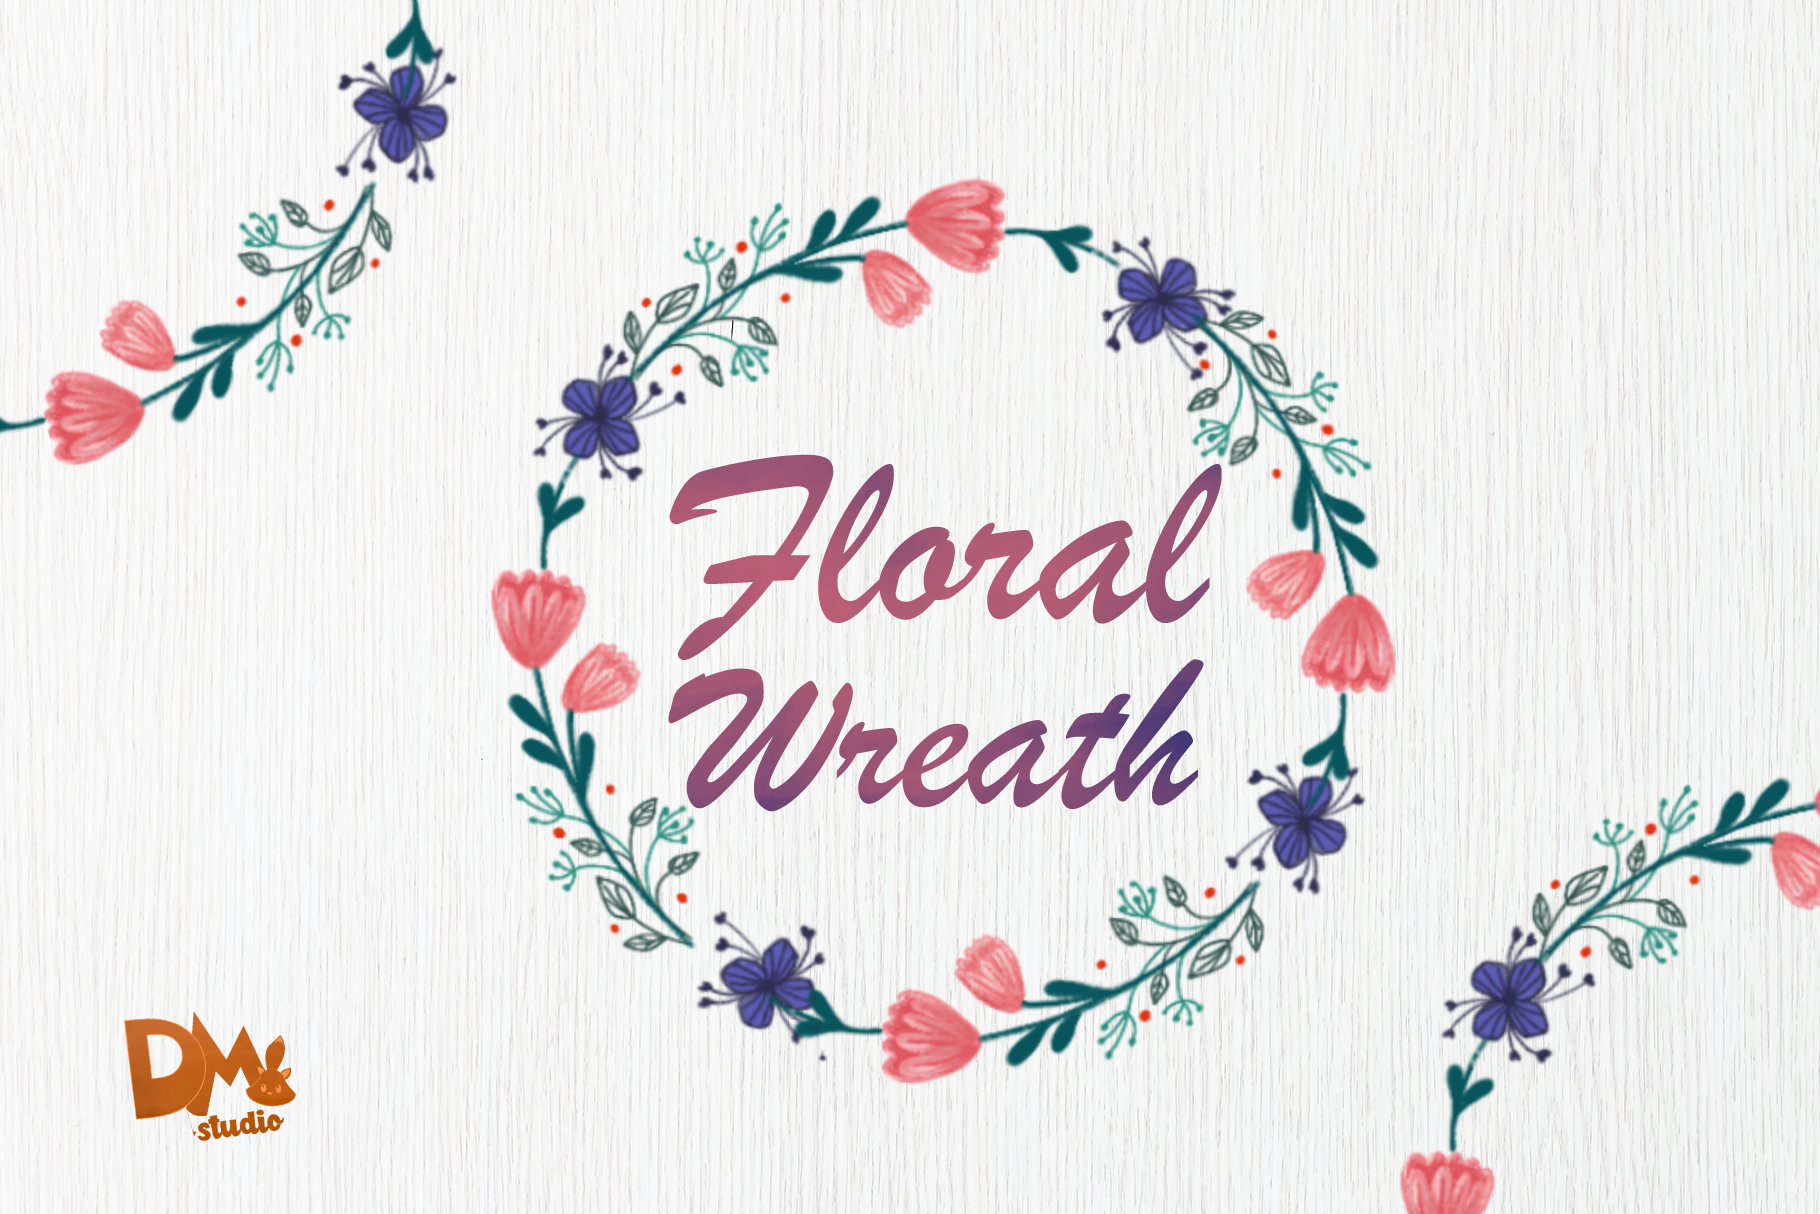 Download Free Pink Purple Flower Wreath Graphic By Sharon Dmstudio for Cricut Explore, Silhouette and other cutting machines.